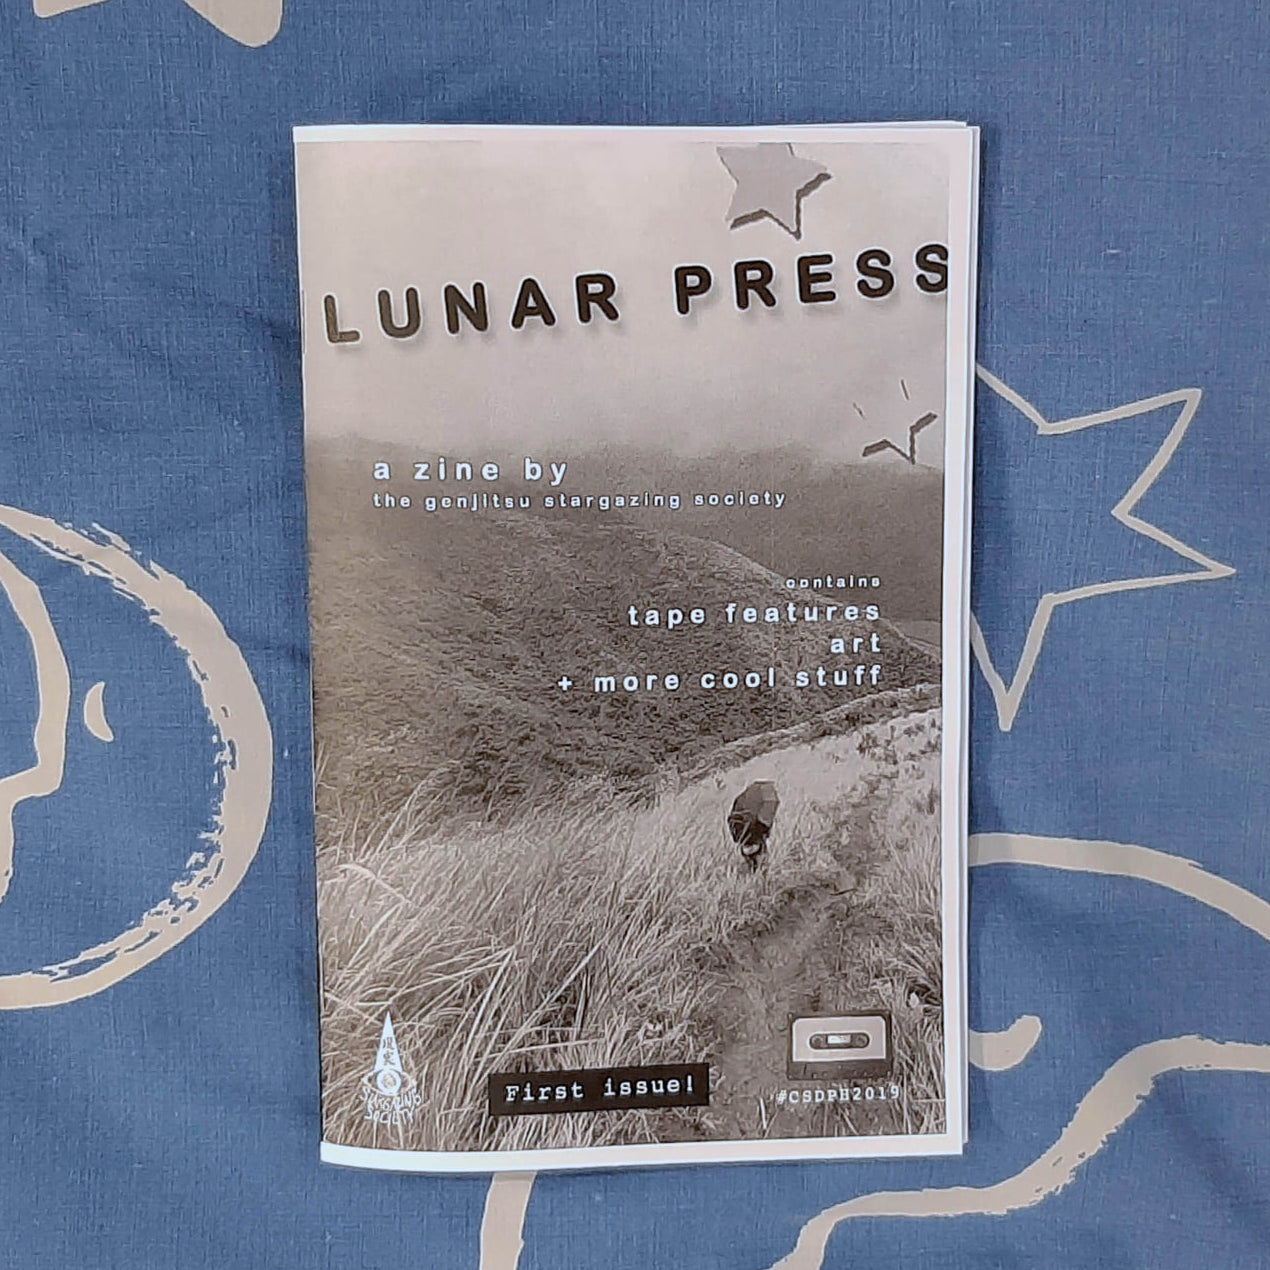 LUNAR PRESS ZINE - Issue #1 (Genjitsu Stargazing Society)